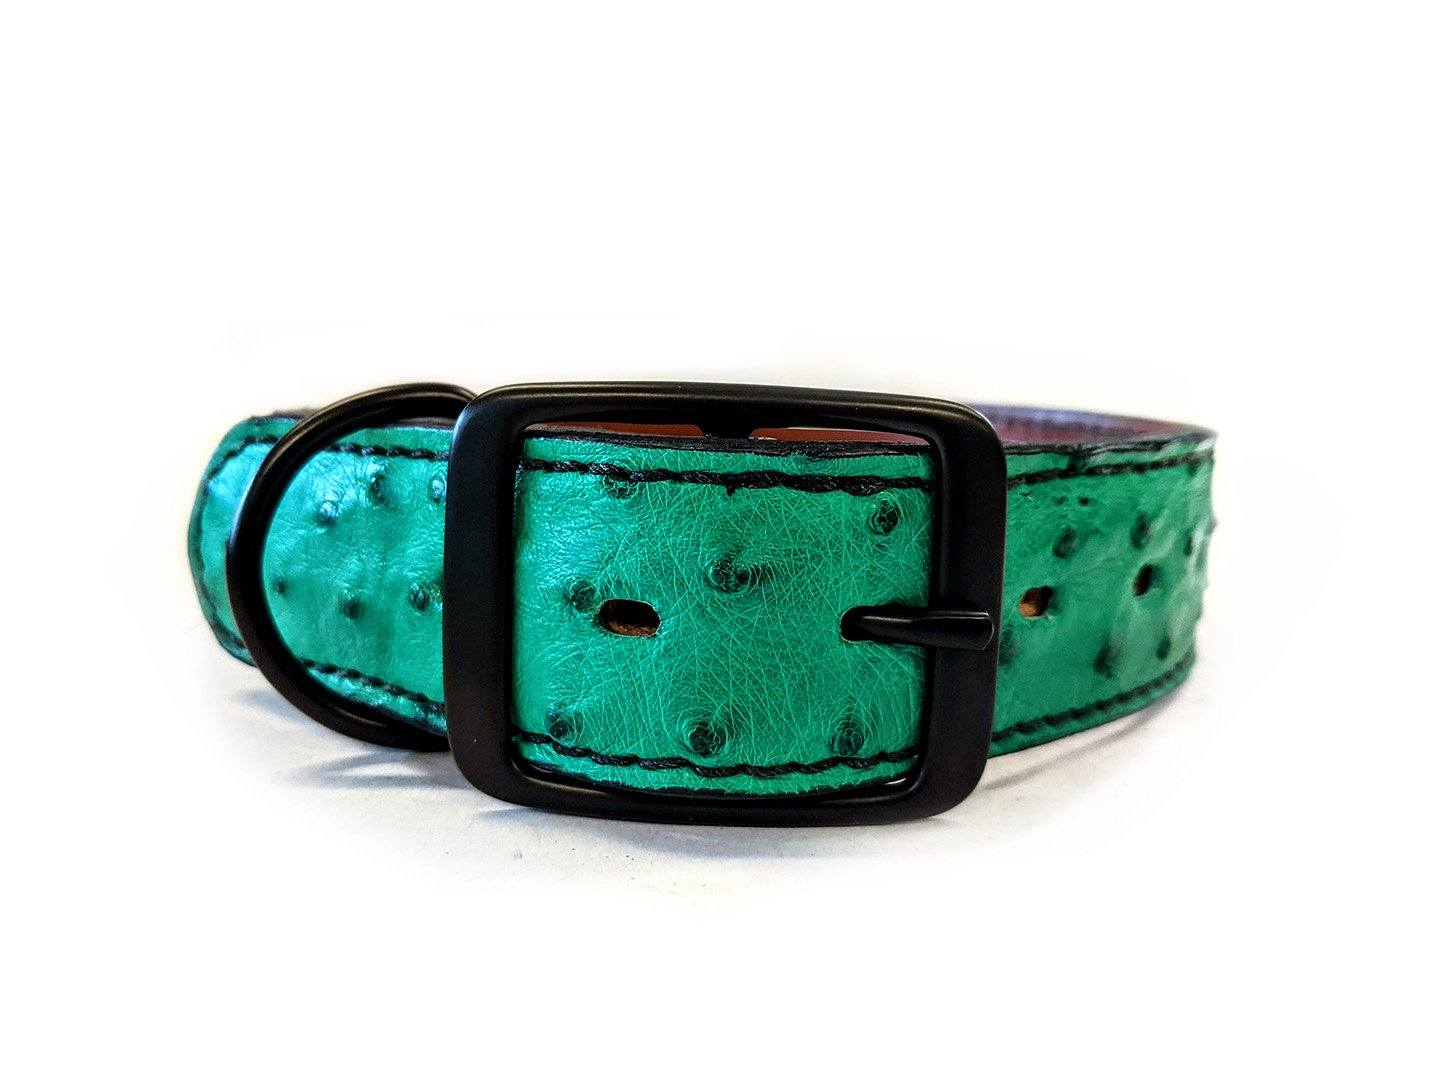 Medium/Large Leather Dog Collar - Green Ostrich